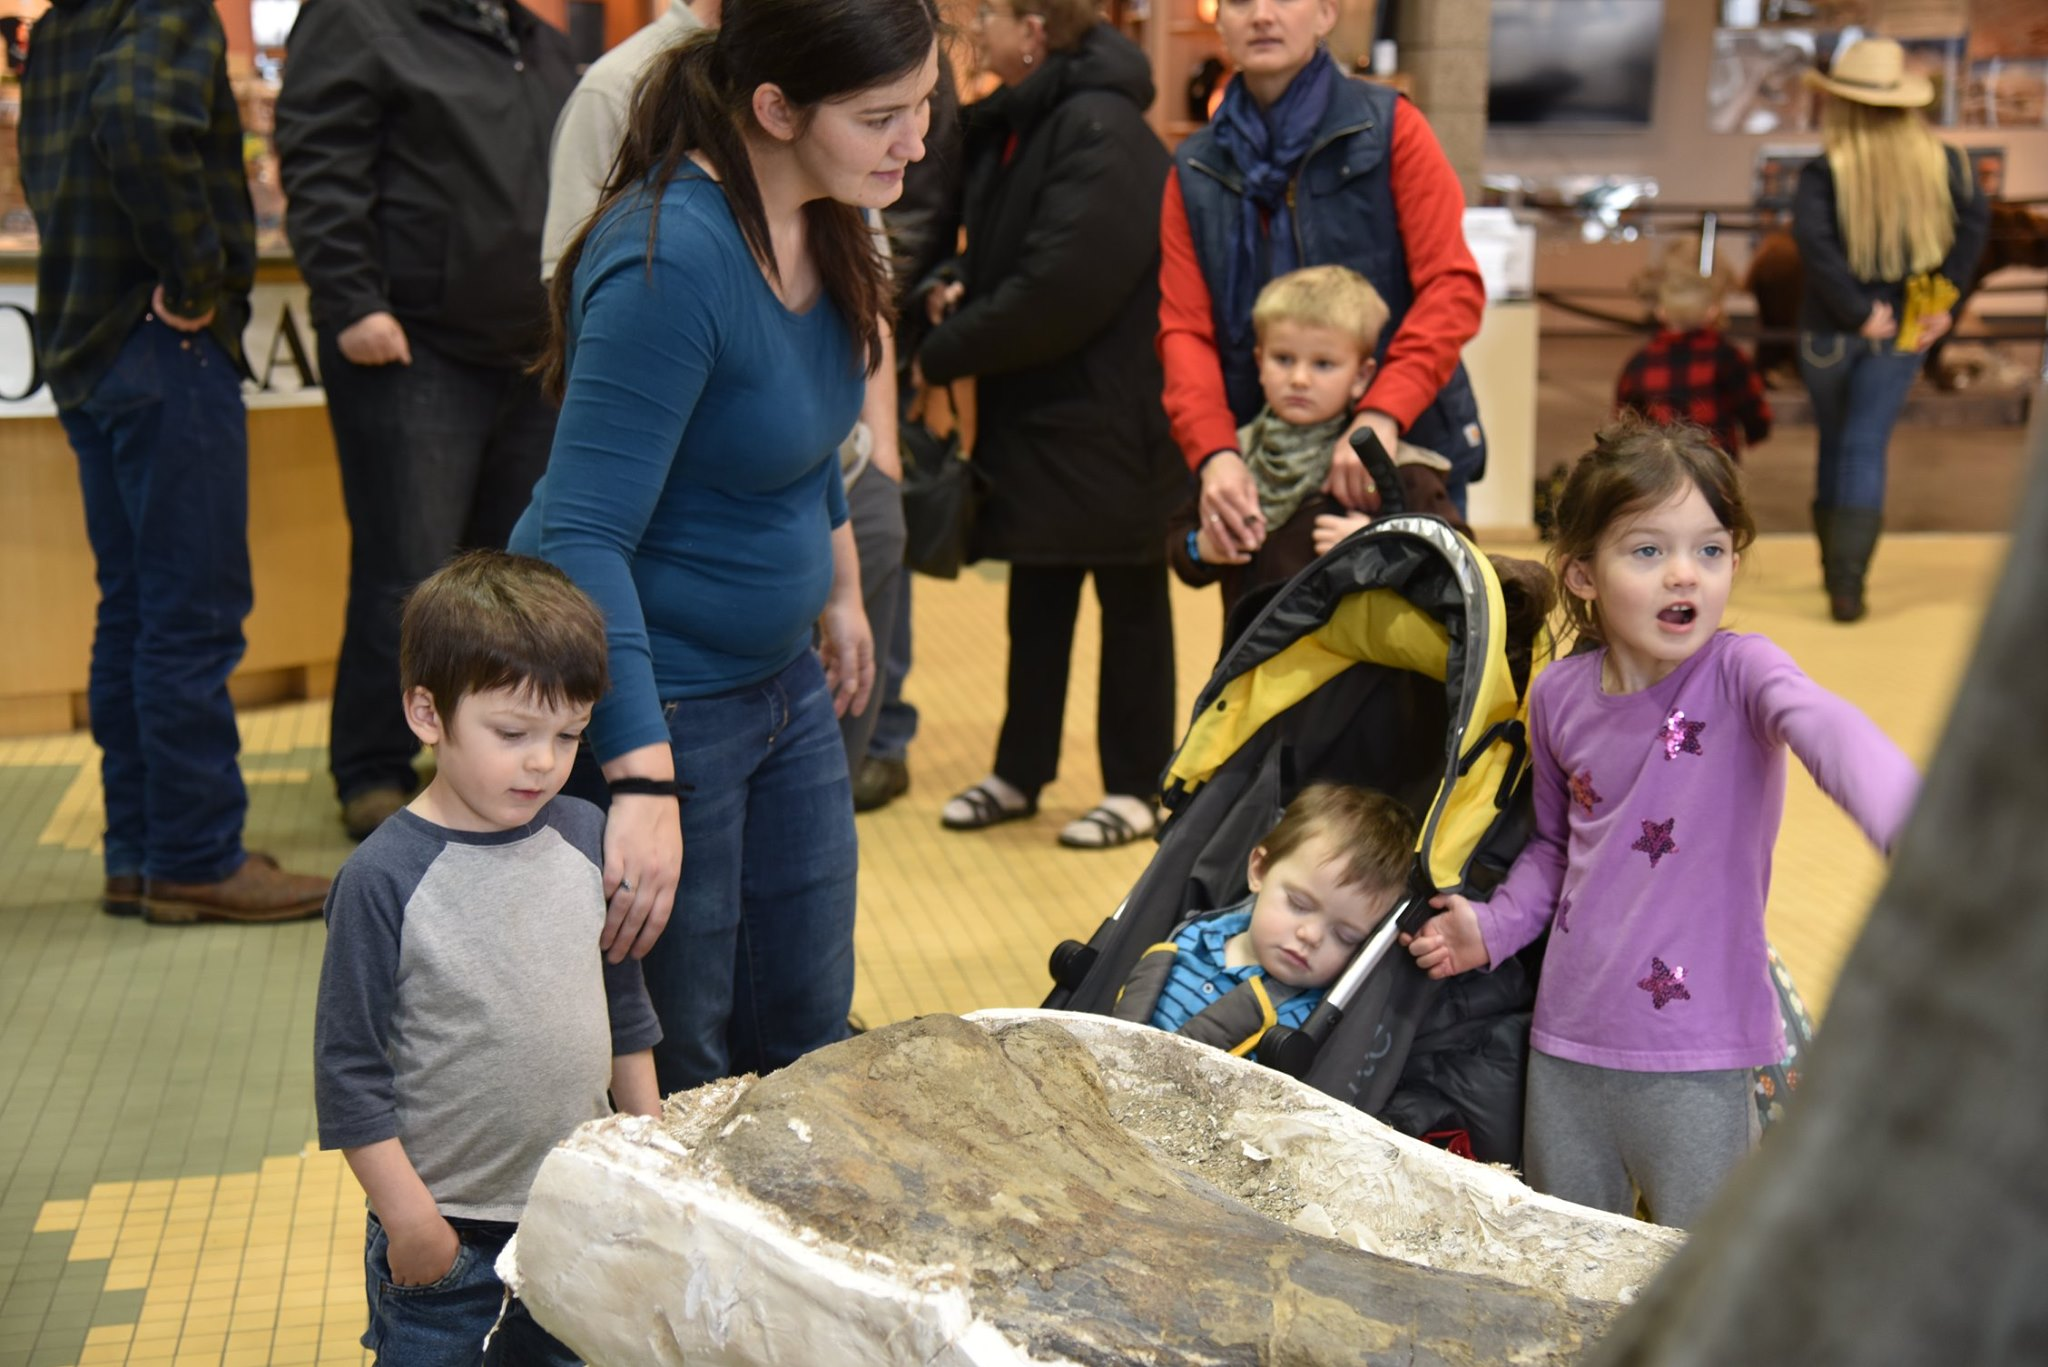 a family including children look at a dinosaur fossil display in Utah